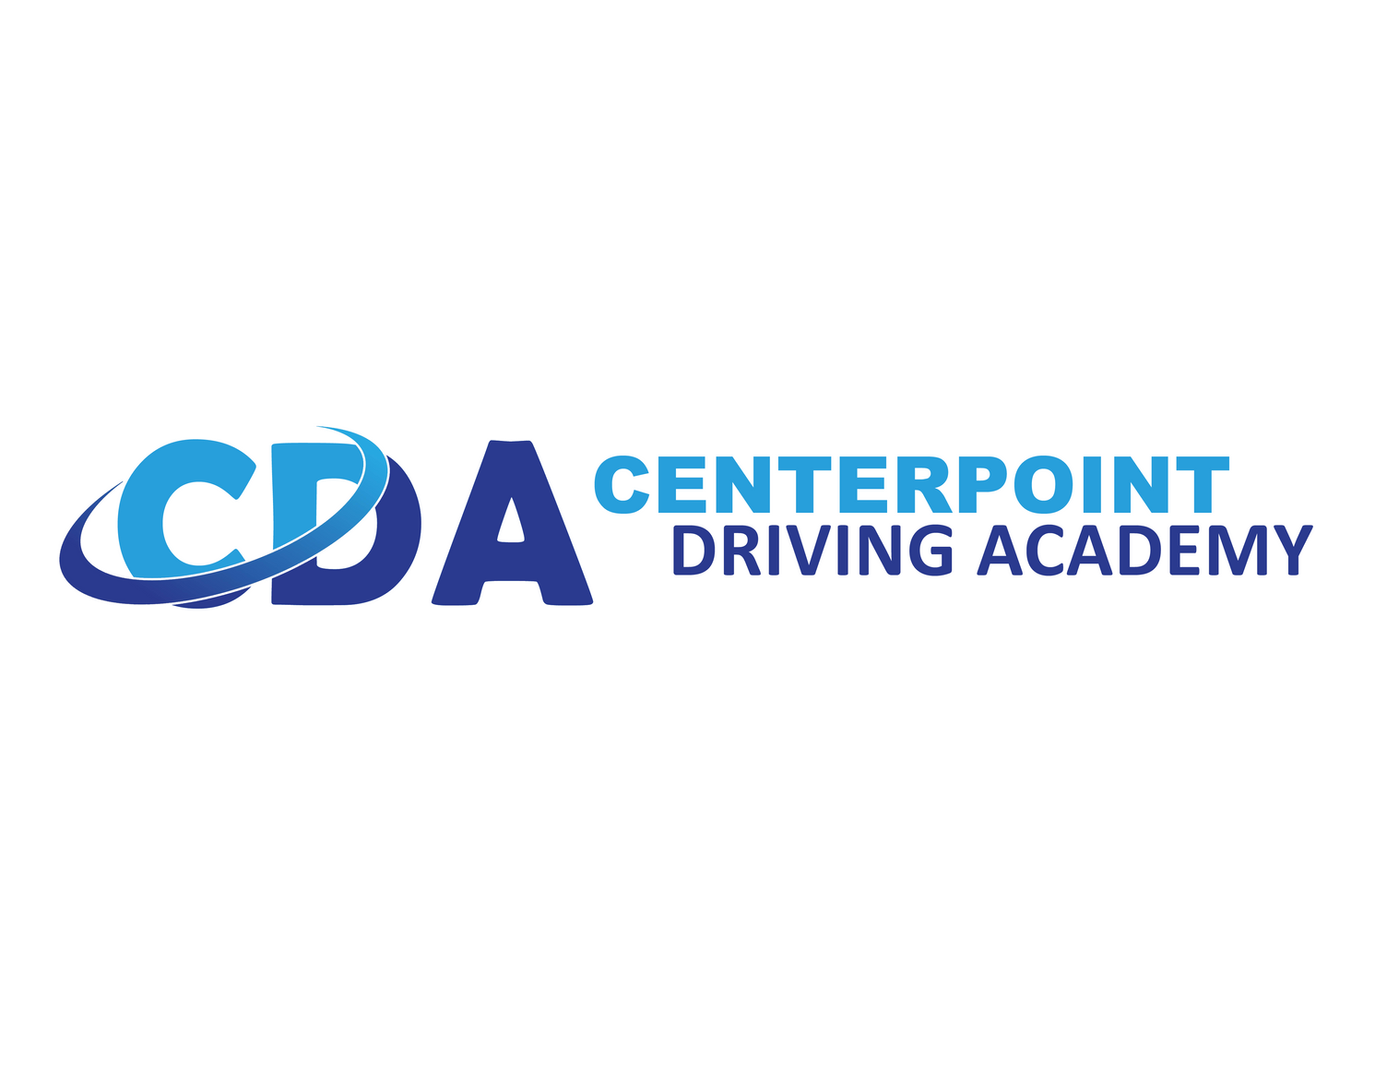 Centerpoint Driving Academy